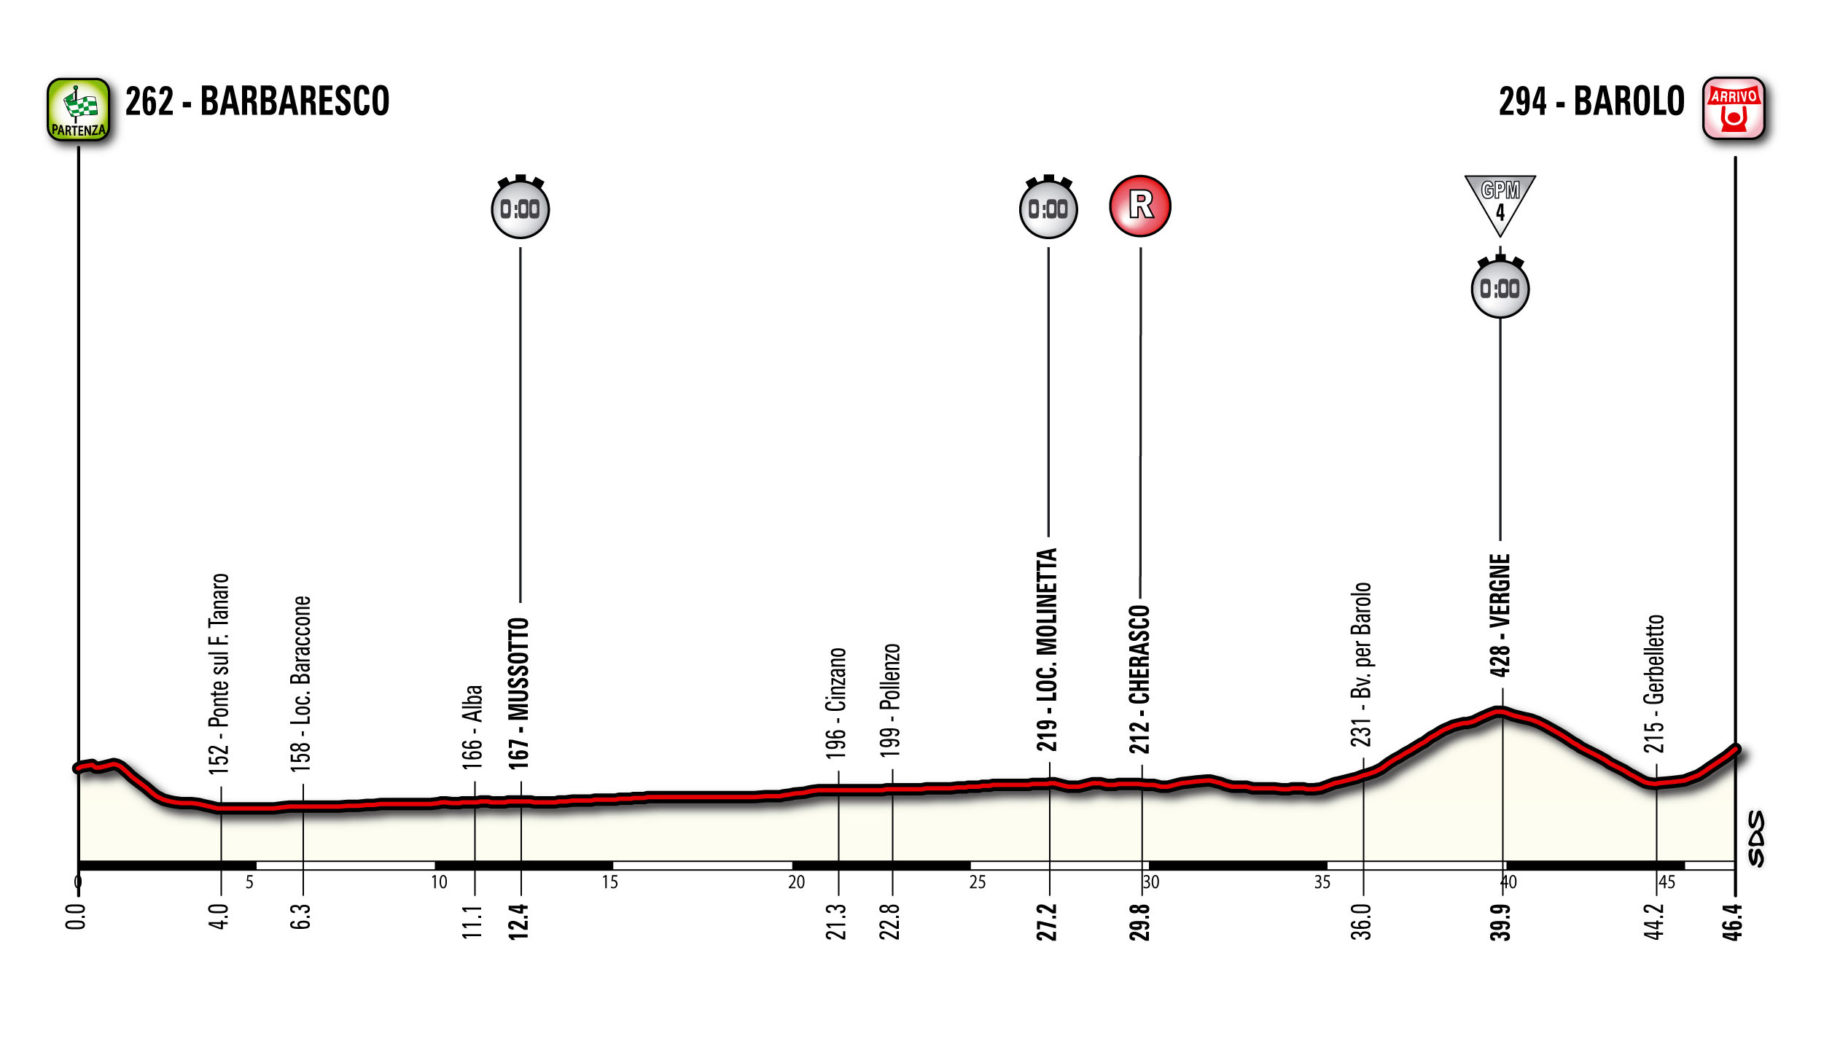 Interbike 2013 Giro D Italia 2014 S Barolo Barbaresco Time Trial Stage Today Bike World News